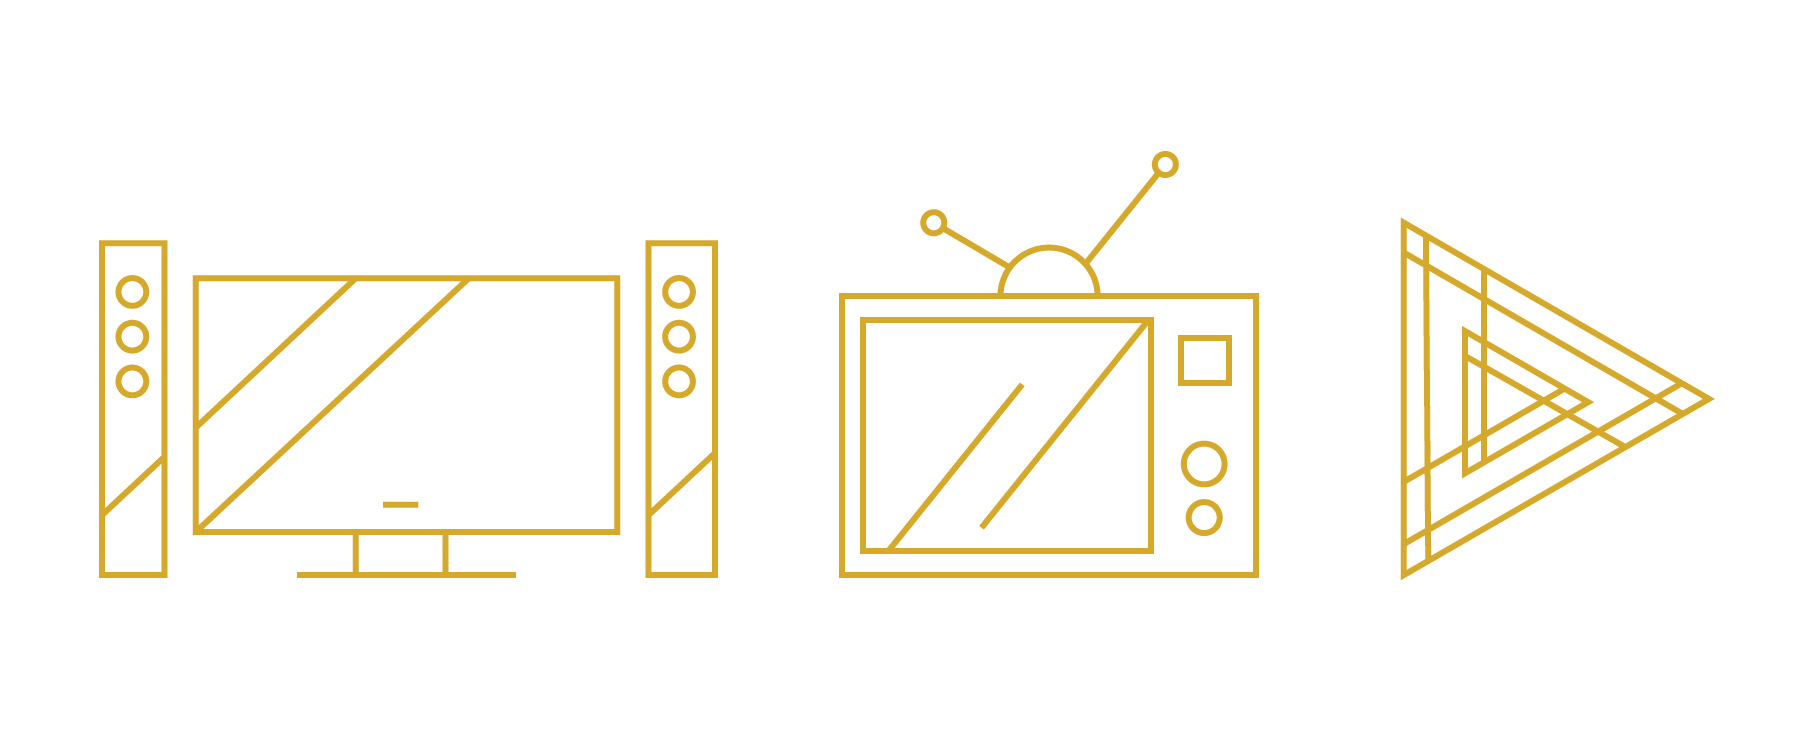 Here is a good example of content choice in an icon that can impact the brand voice. These icons all get at the idea of video, but each allows for a different tone of voice when referring to video. Does your company want to be modern with a fancy tv set up, or quirky and retro hipster with an old tv, or more geometric but straightforward with a play button? One option is more humorous, one is very stylistic and artistic, and the other choice is rich, modern and clean.